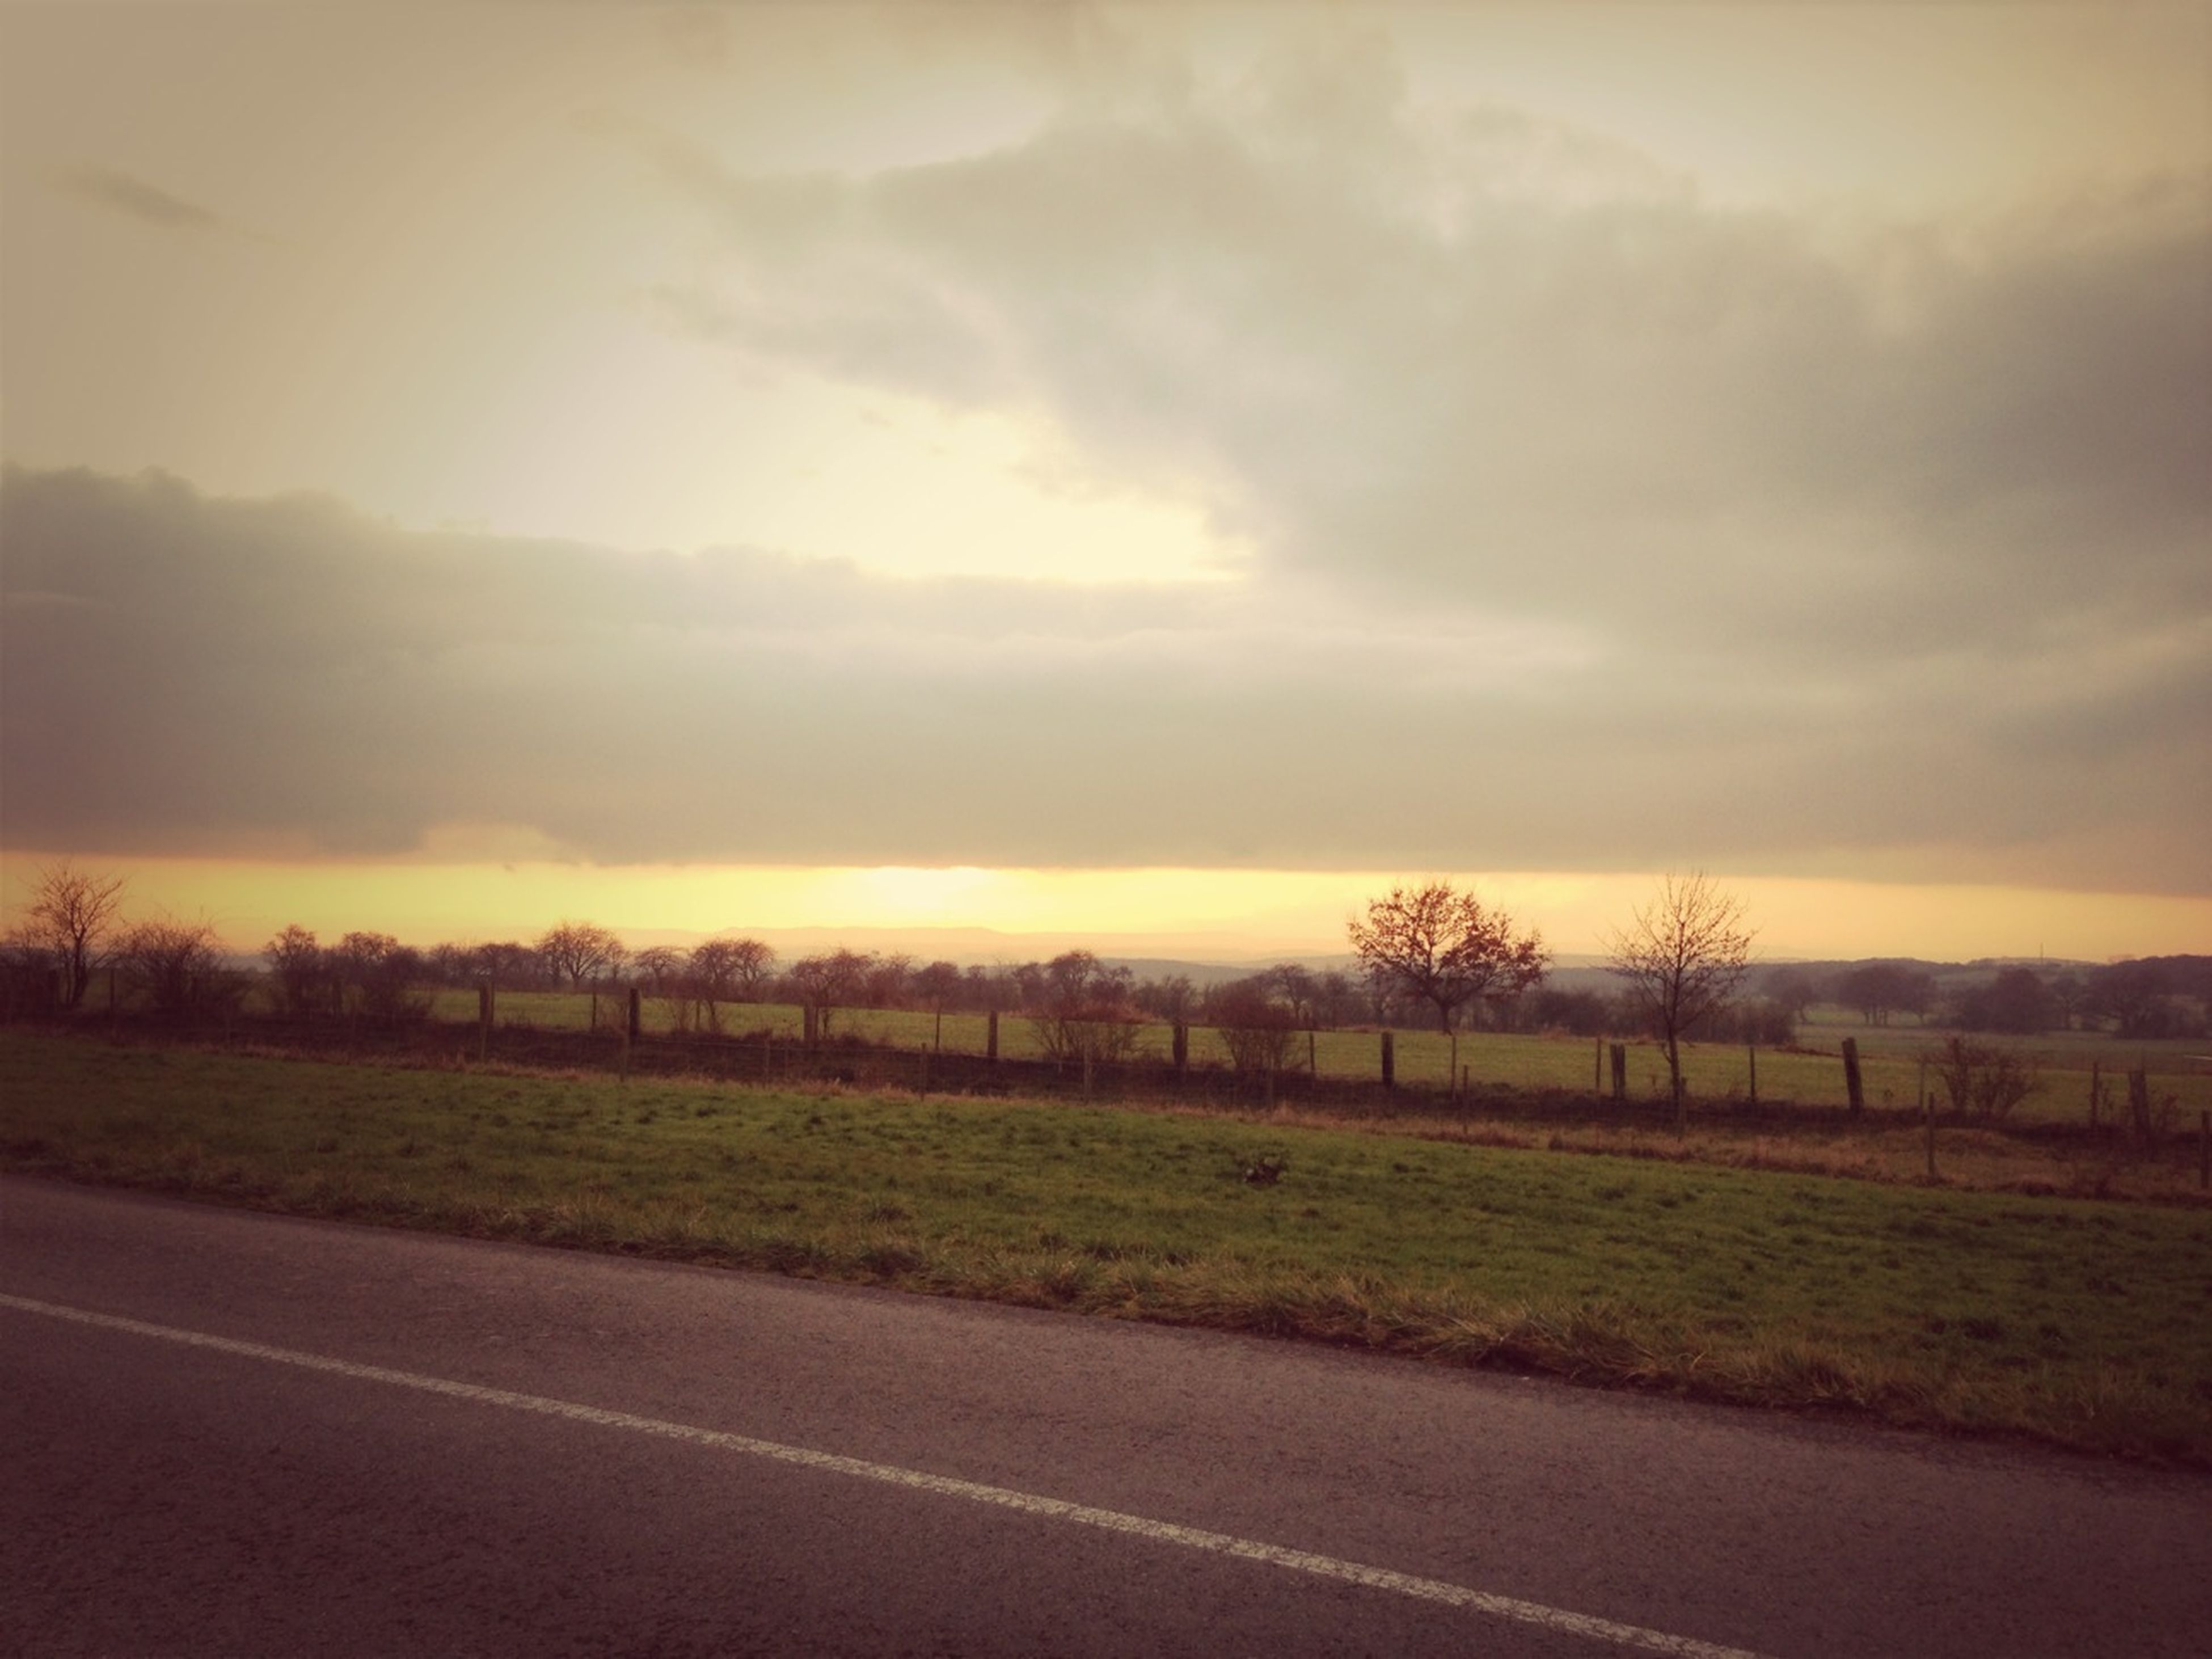 sunset, sky, landscape, tranquility, field, tranquil scene, road, tree, scenics, cloud - sky, nature, beauty in nature, grass, transportation, rural scene, cloud, country road, idyllic, non-urban scene, growth